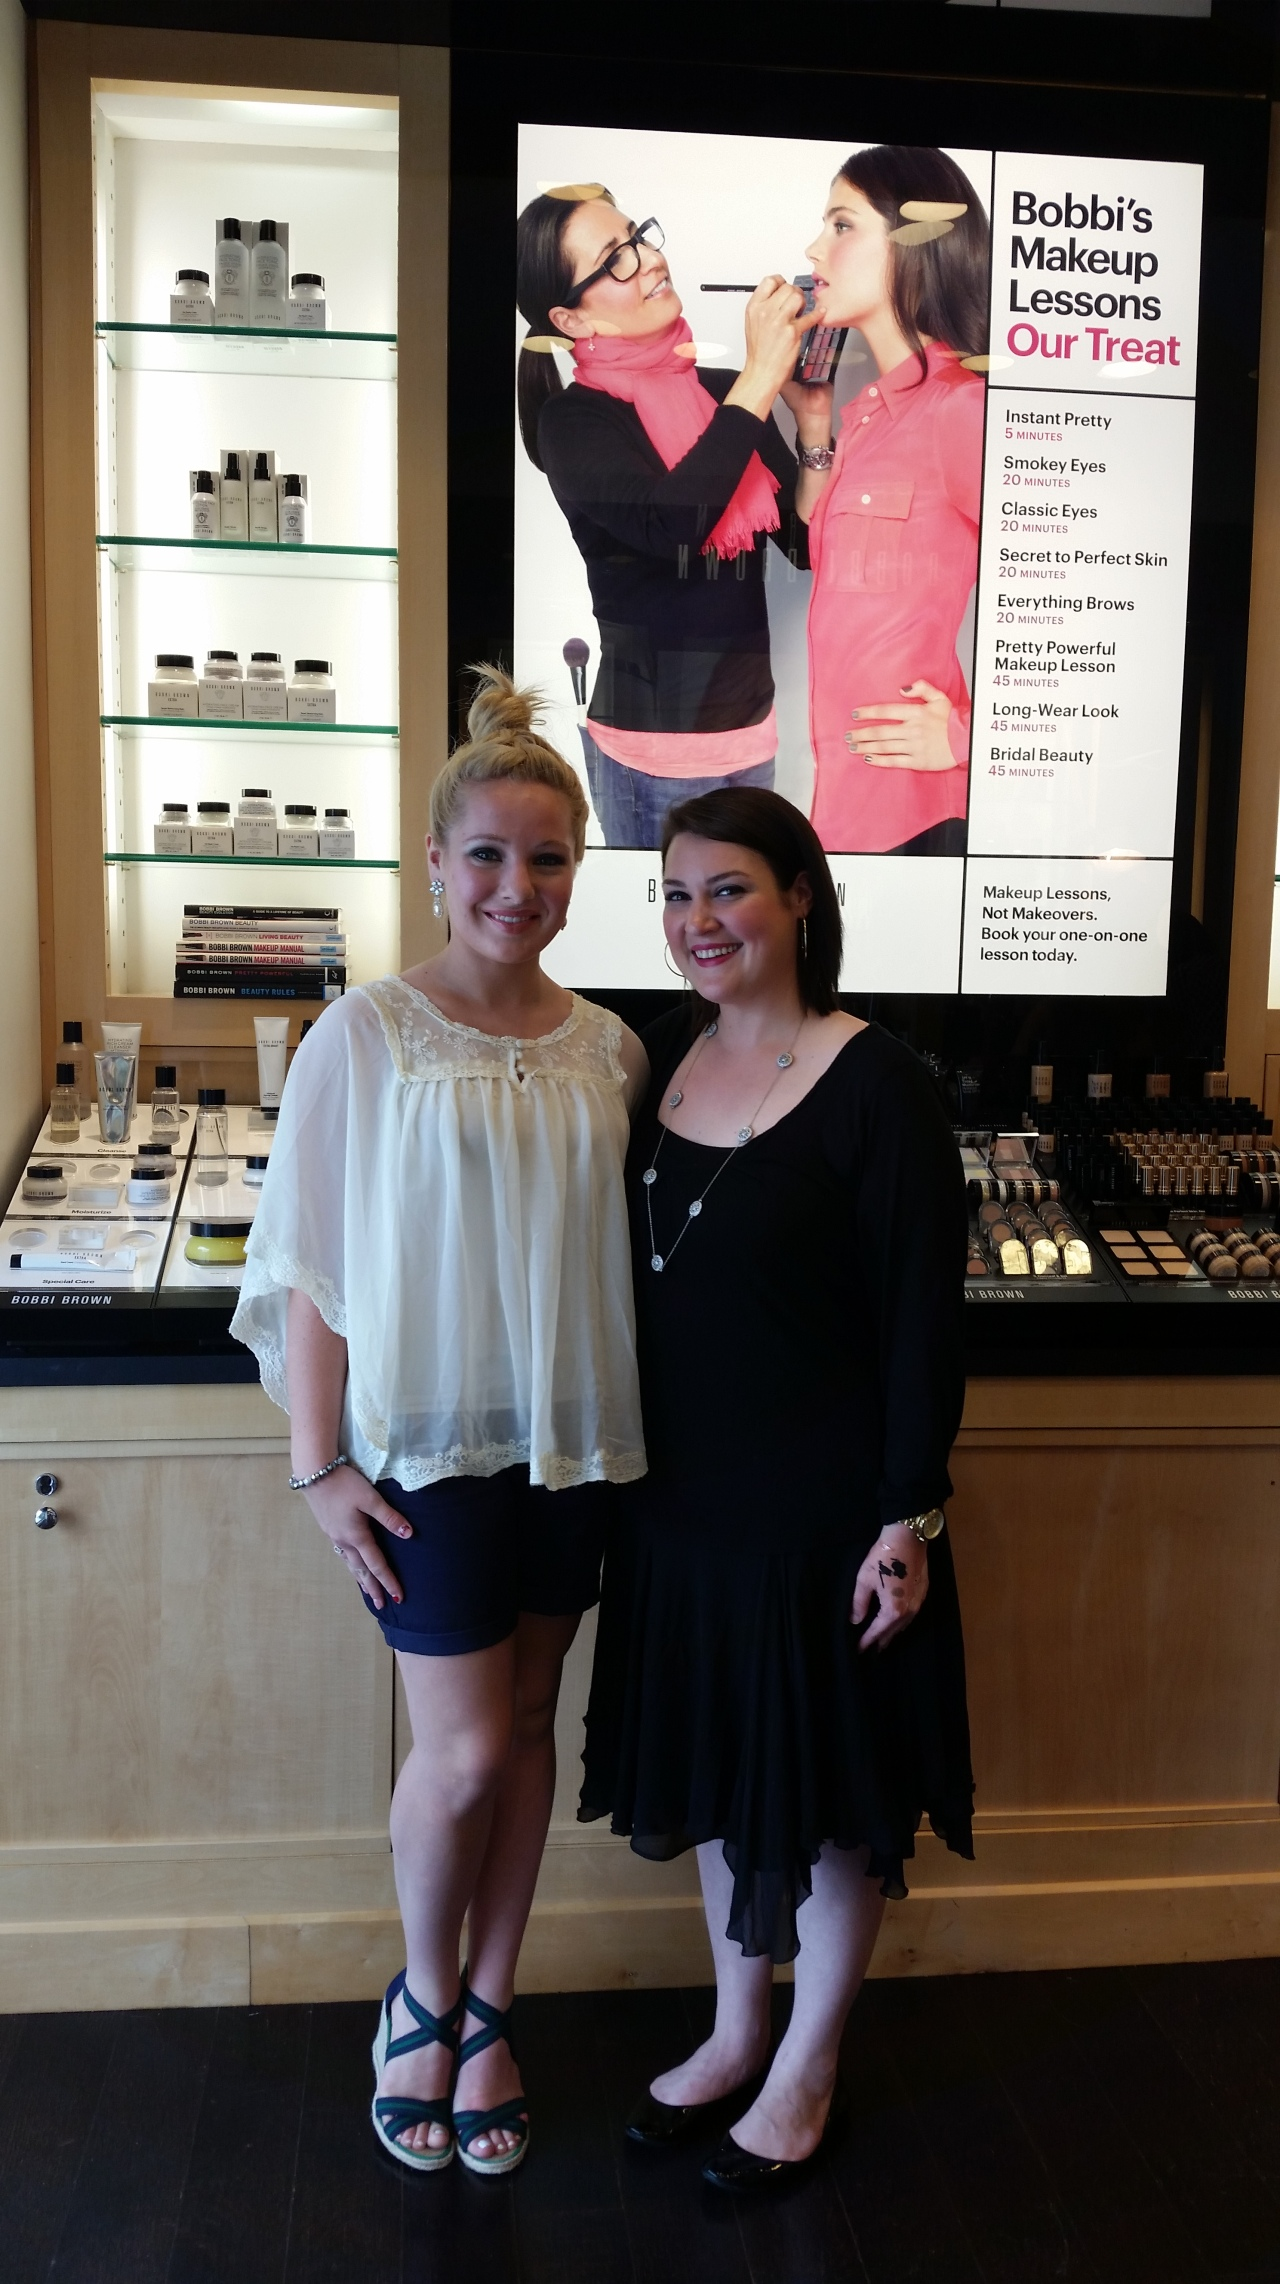 Who would have thought that creating two makeup looks--one for day and one for night--could be so easy! Thank you, Becca Sammis, for opening up my eyes to the fabulous versatility of Bobbi Brown products! You're the best!